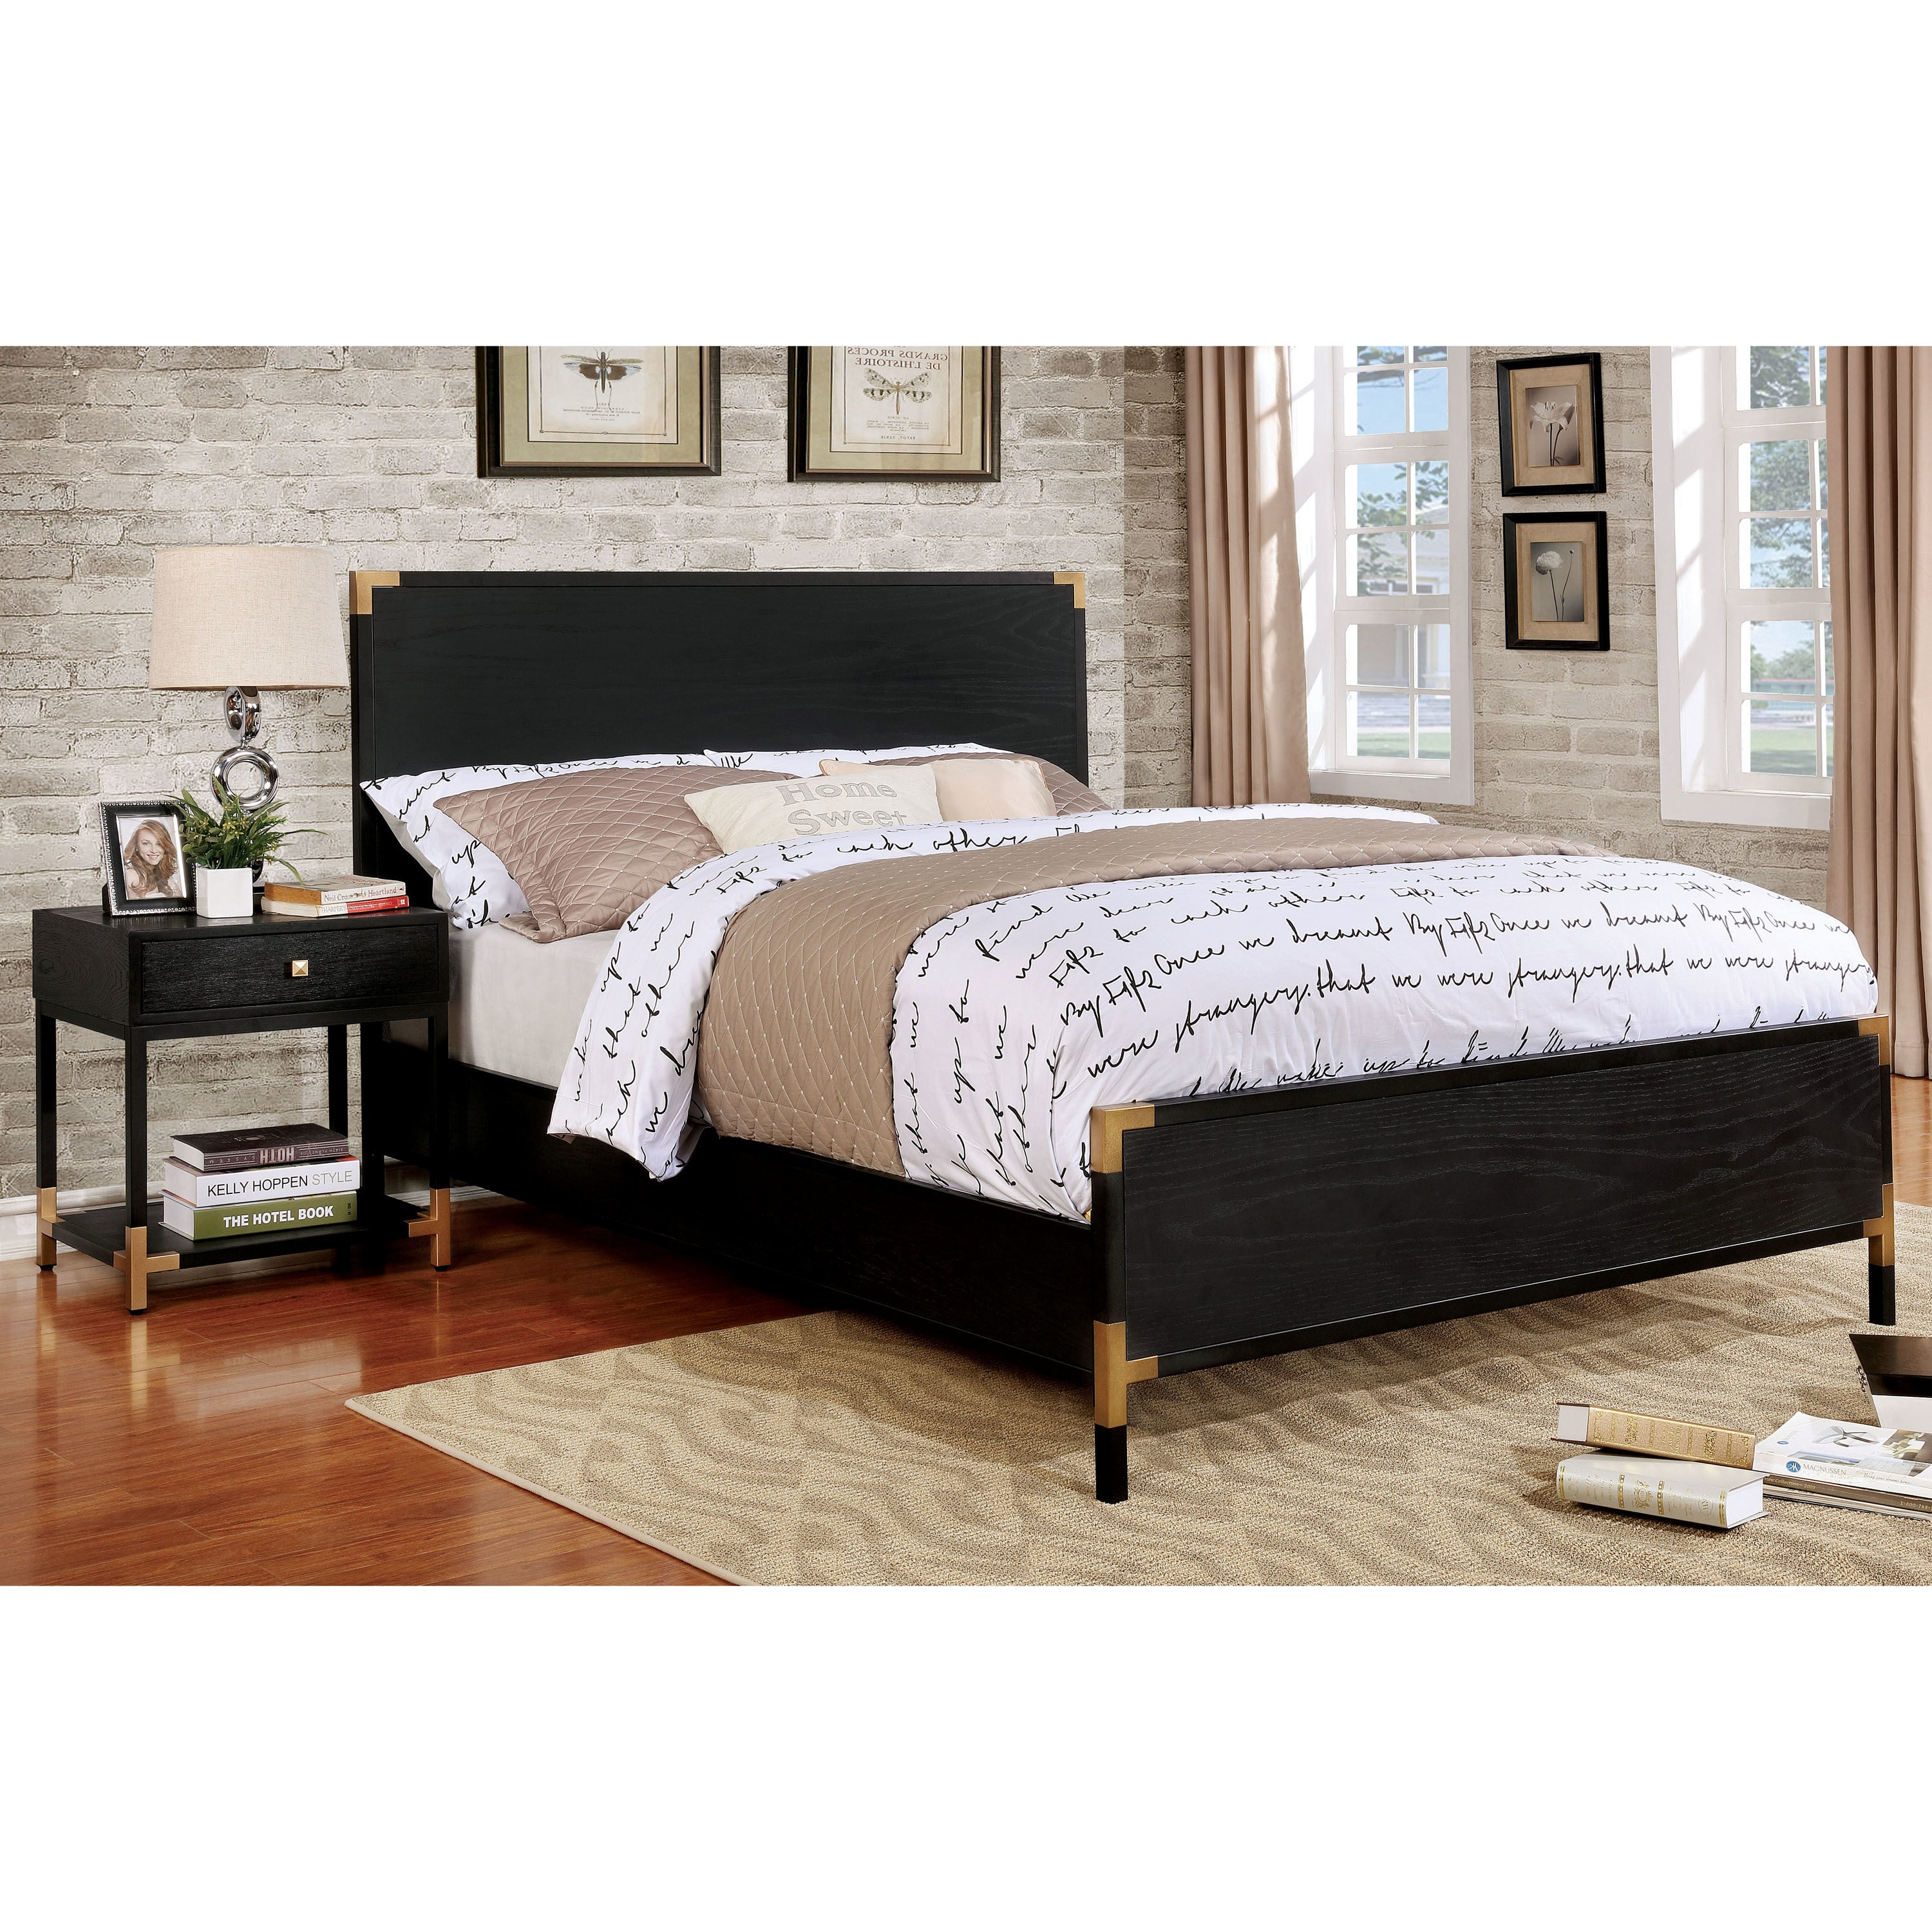 Furniture of America Hutton Contemporary Black/Gold Paneled Queen ...